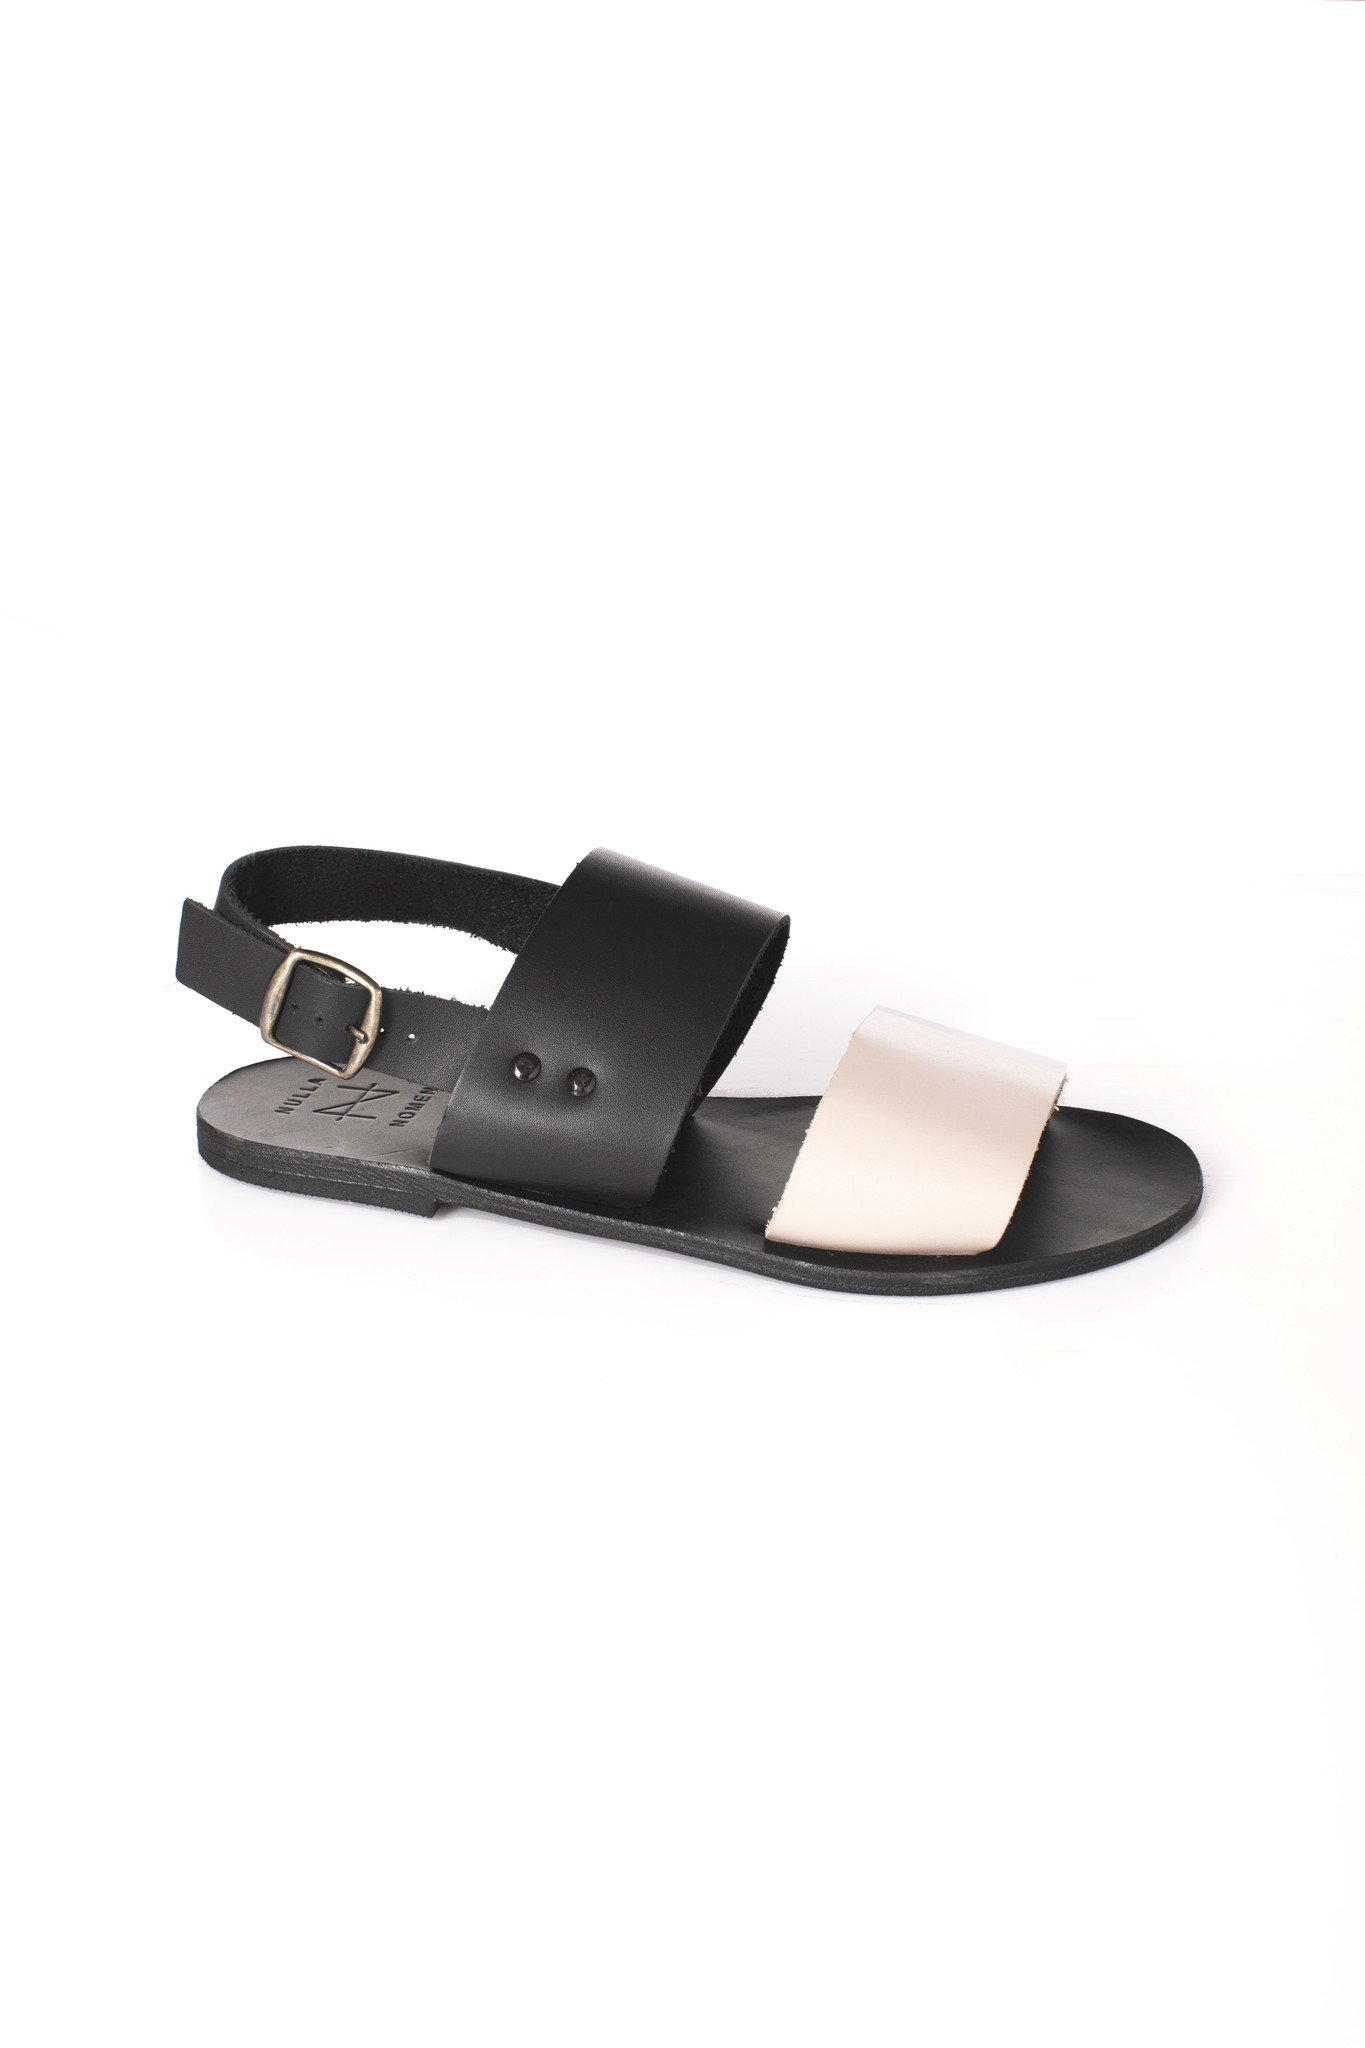 Nulla Nomen | Sandal black / Nude Vegetable Tanned Leather-2